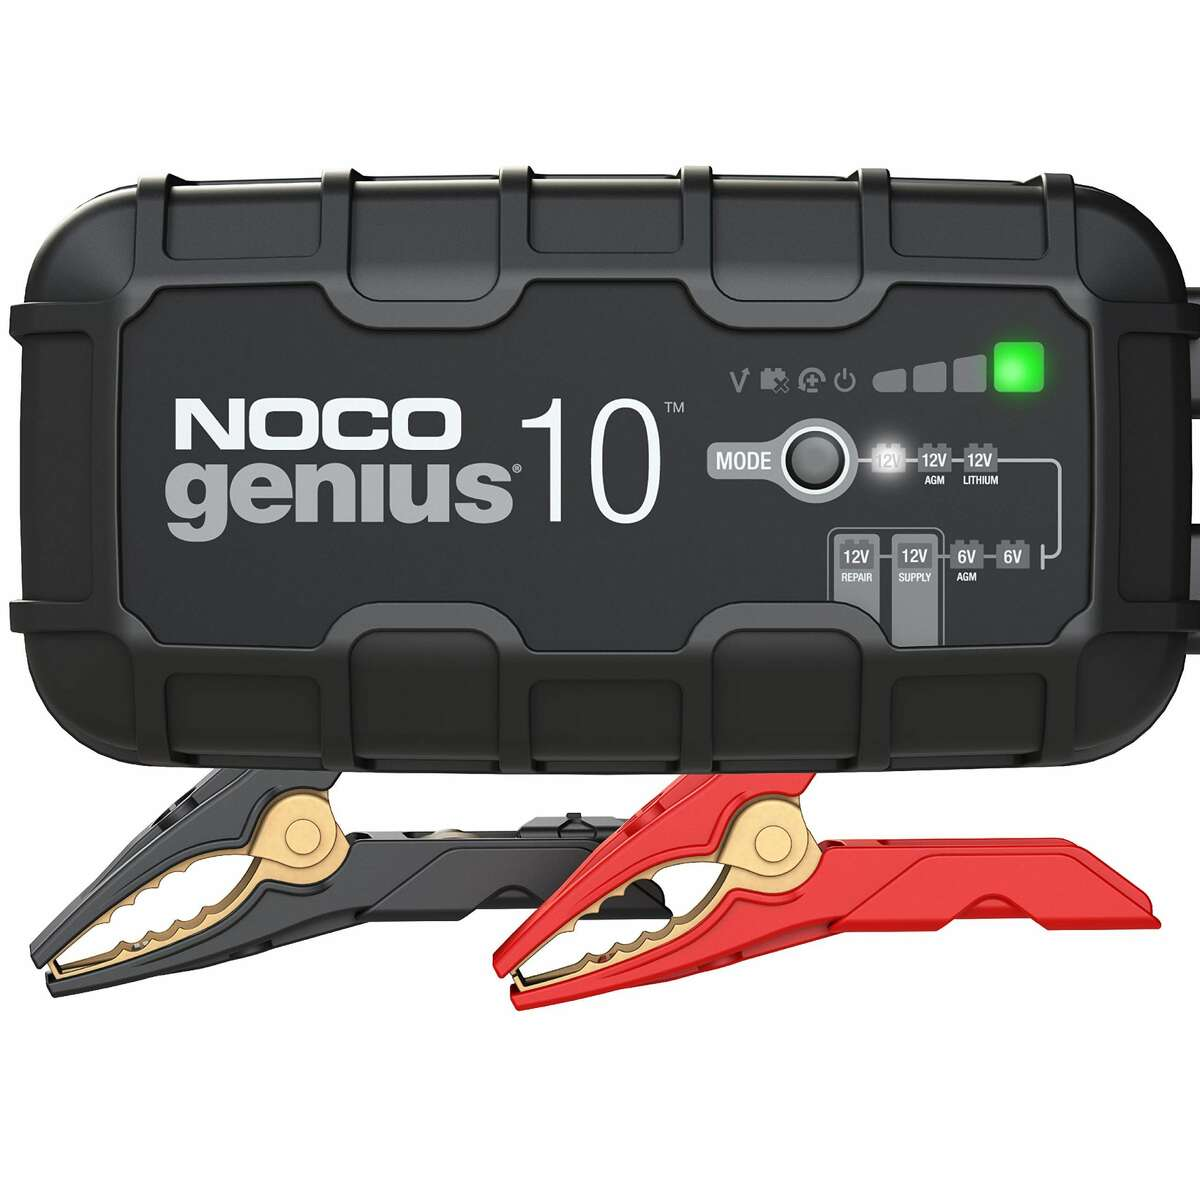 NOCO's Genius10 battery charger/maintainer is largely automatic.